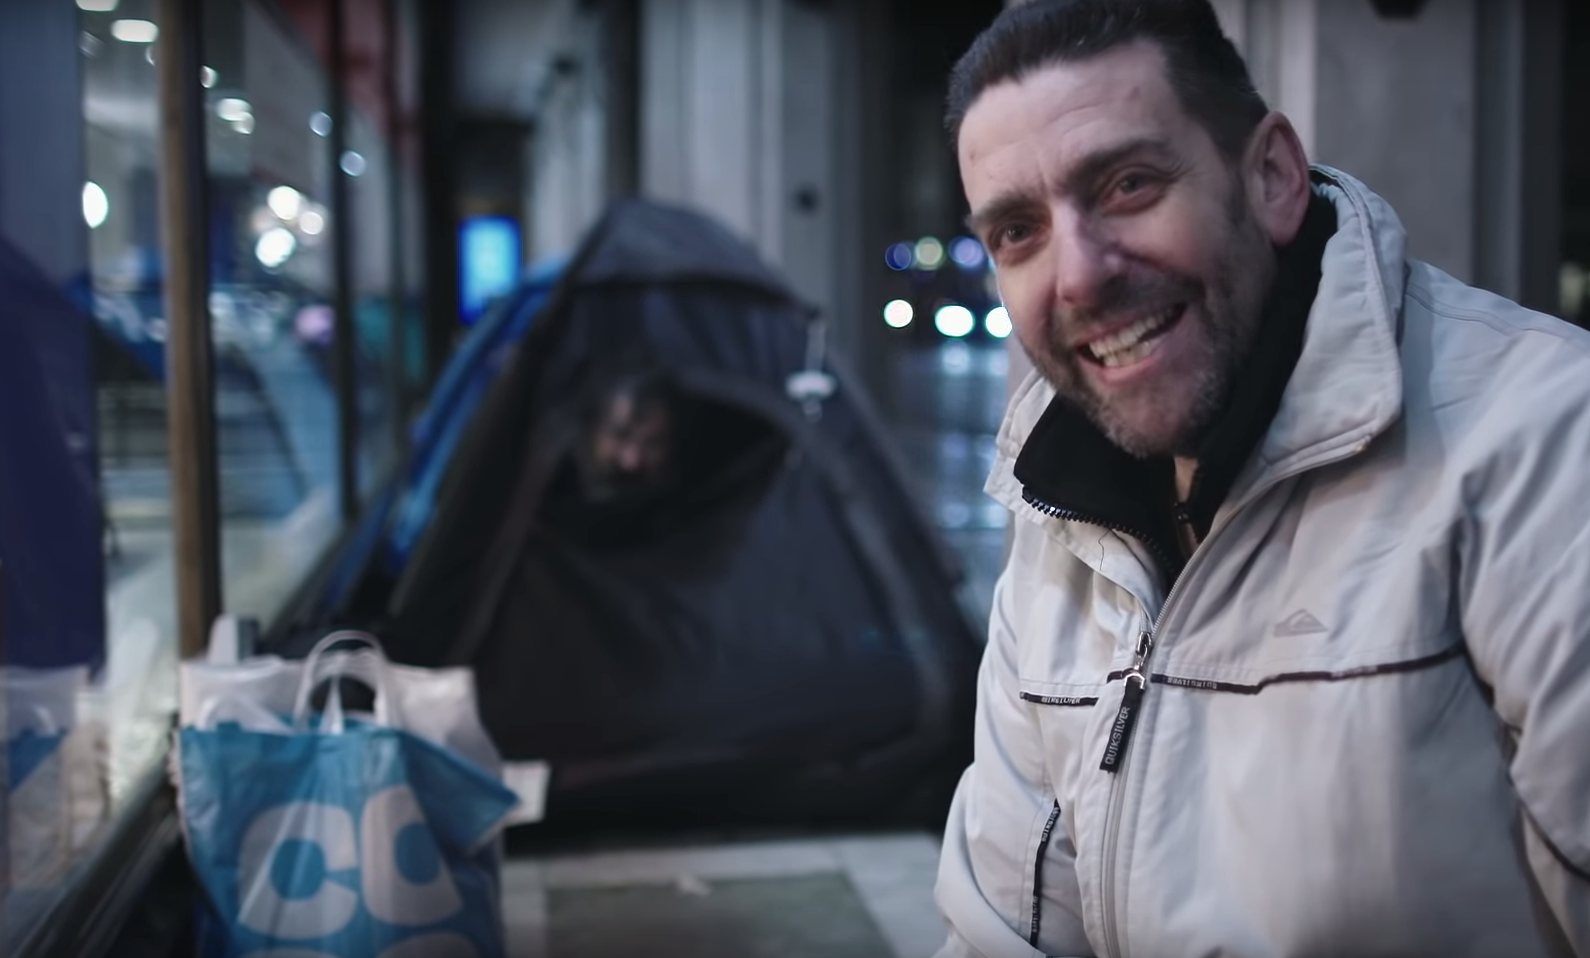 Meet The Homeless Film Director